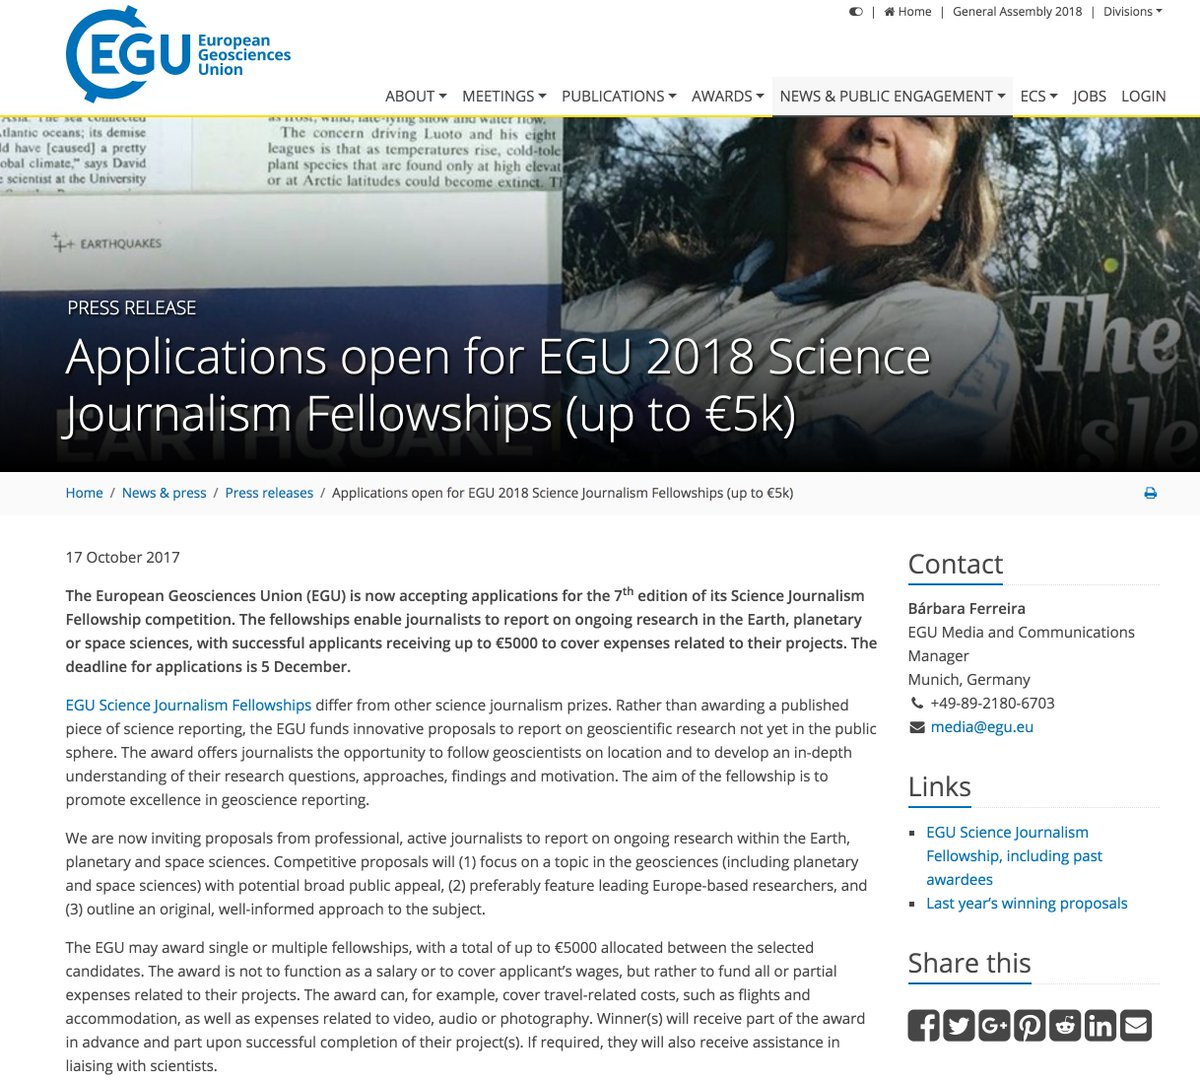 Fellowship open! May interest many attending #WCSJ2017. Open science journalism fellowship from @EuroGeosciences Deadline: 5th December!  https://www. egu.eu/news/362/appli cations-open-for-egu-2018-science-journalism-fellowships-up-to-5k/ &nbsp; … <br>http://pic.twitter.com/hjtPxvsKtI